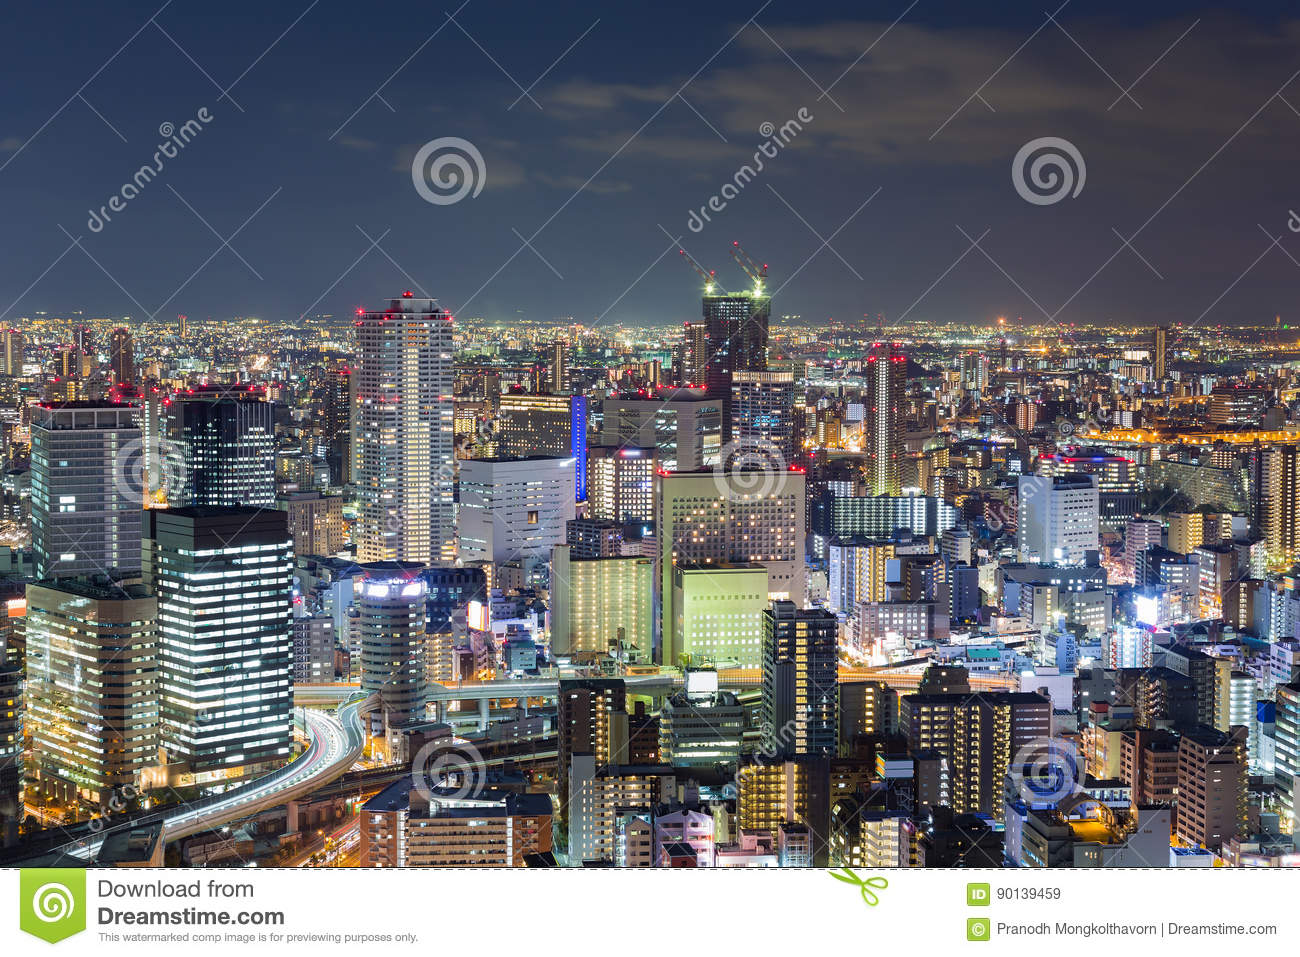 Nights city office building, cityscape downtown background